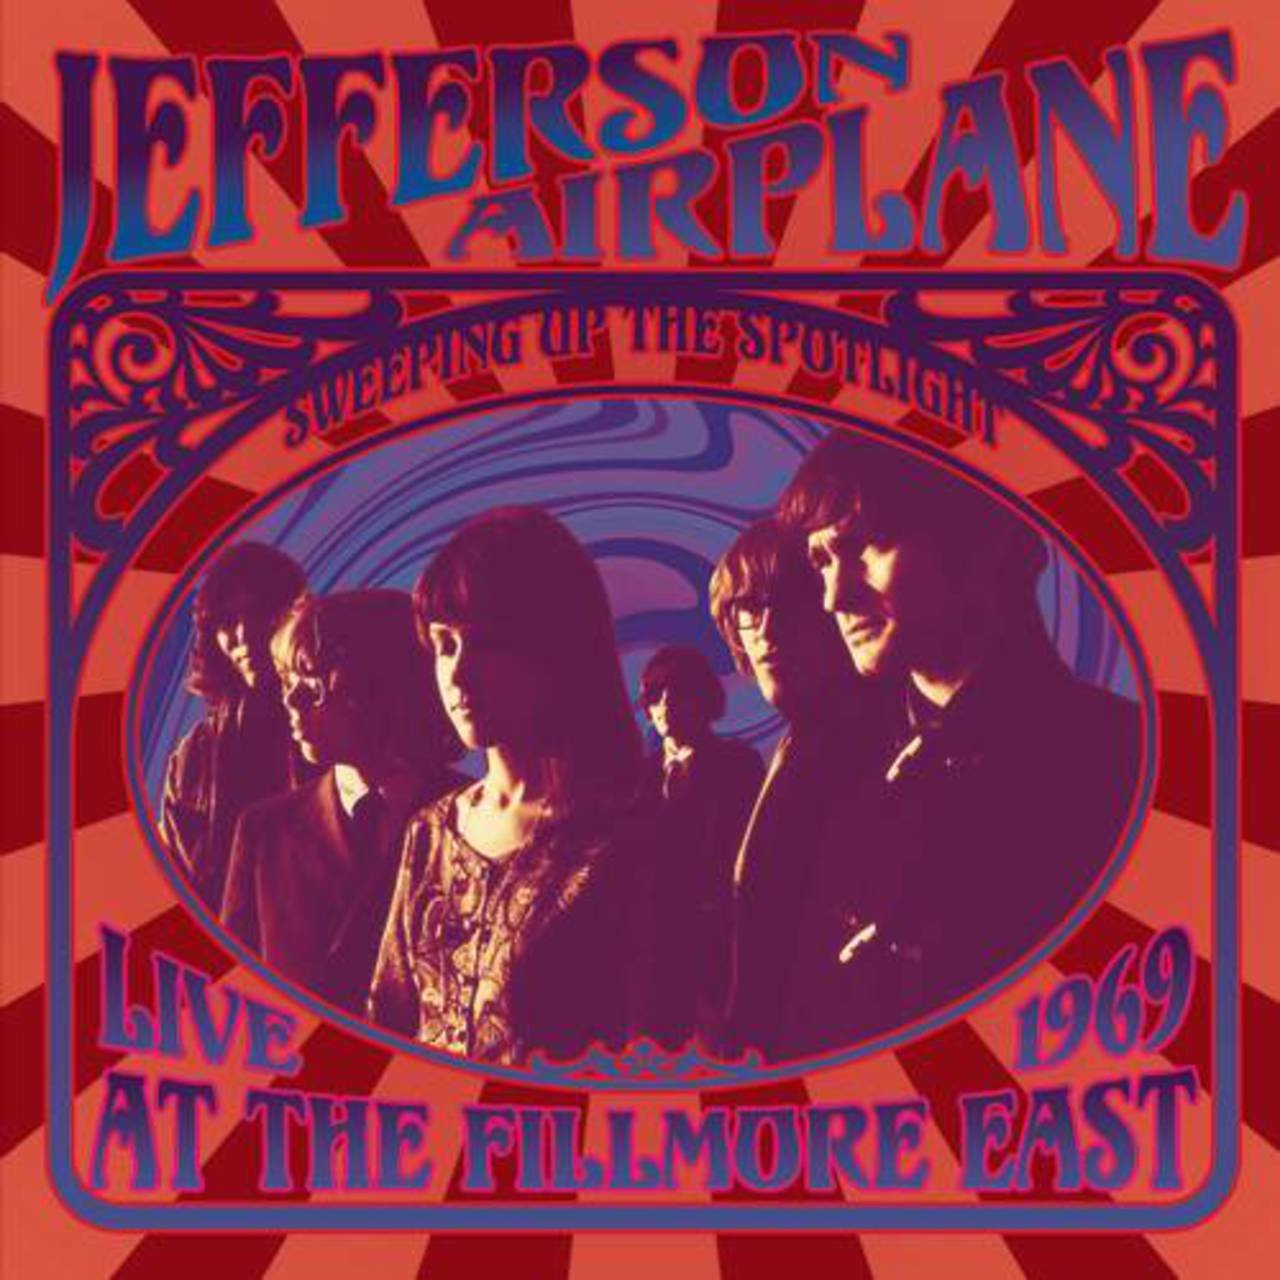 Jefferson airplane the essential mp3